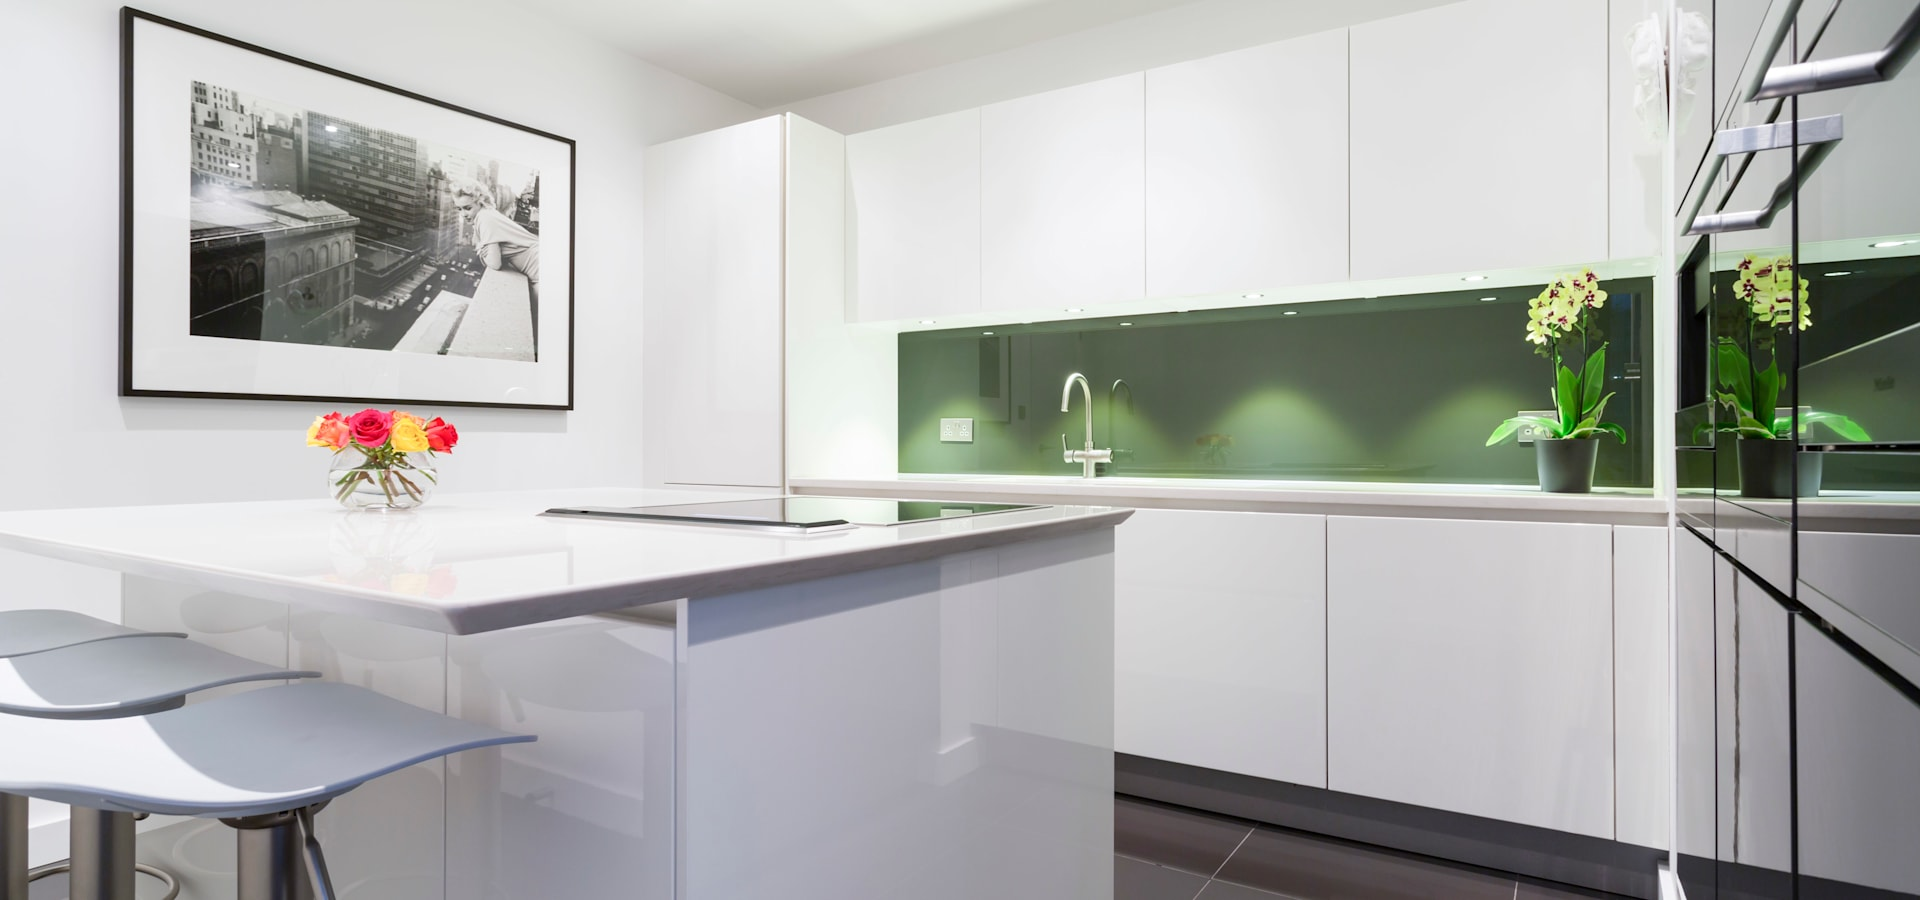 LWK London Kitchens